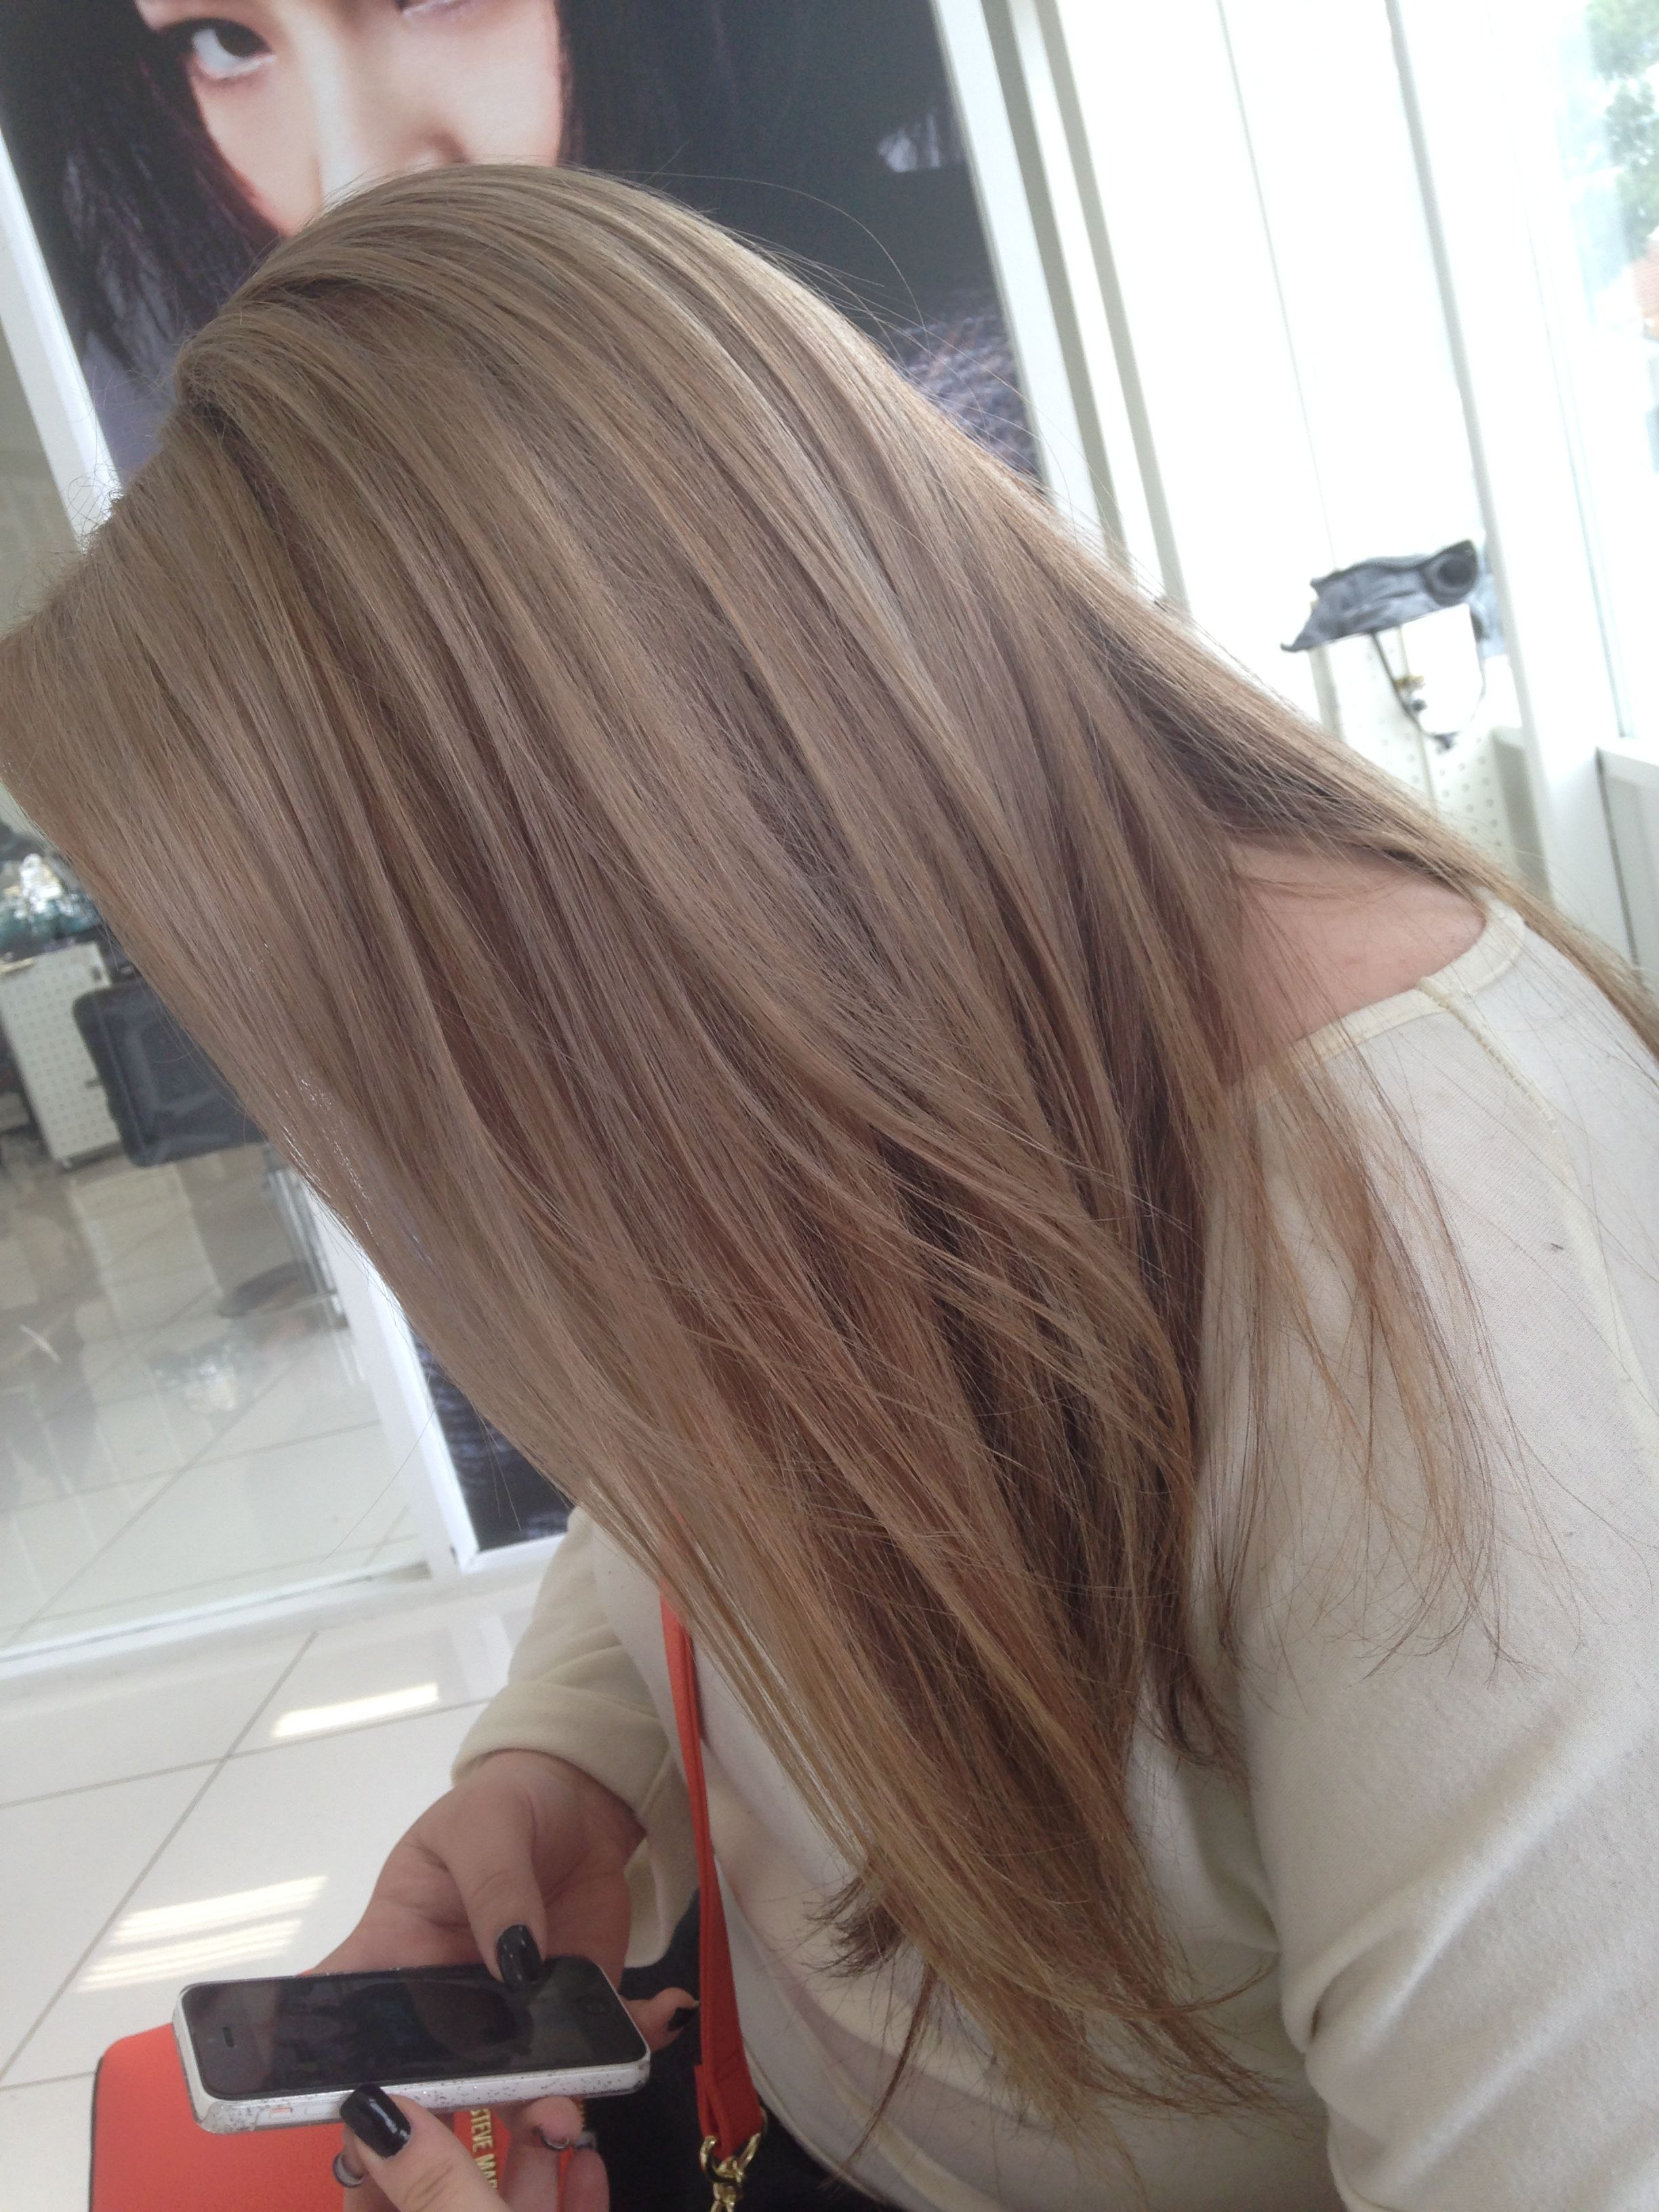 Used Schwarzkopf Igora Royal In 12 19 As A Toner To Give Her That